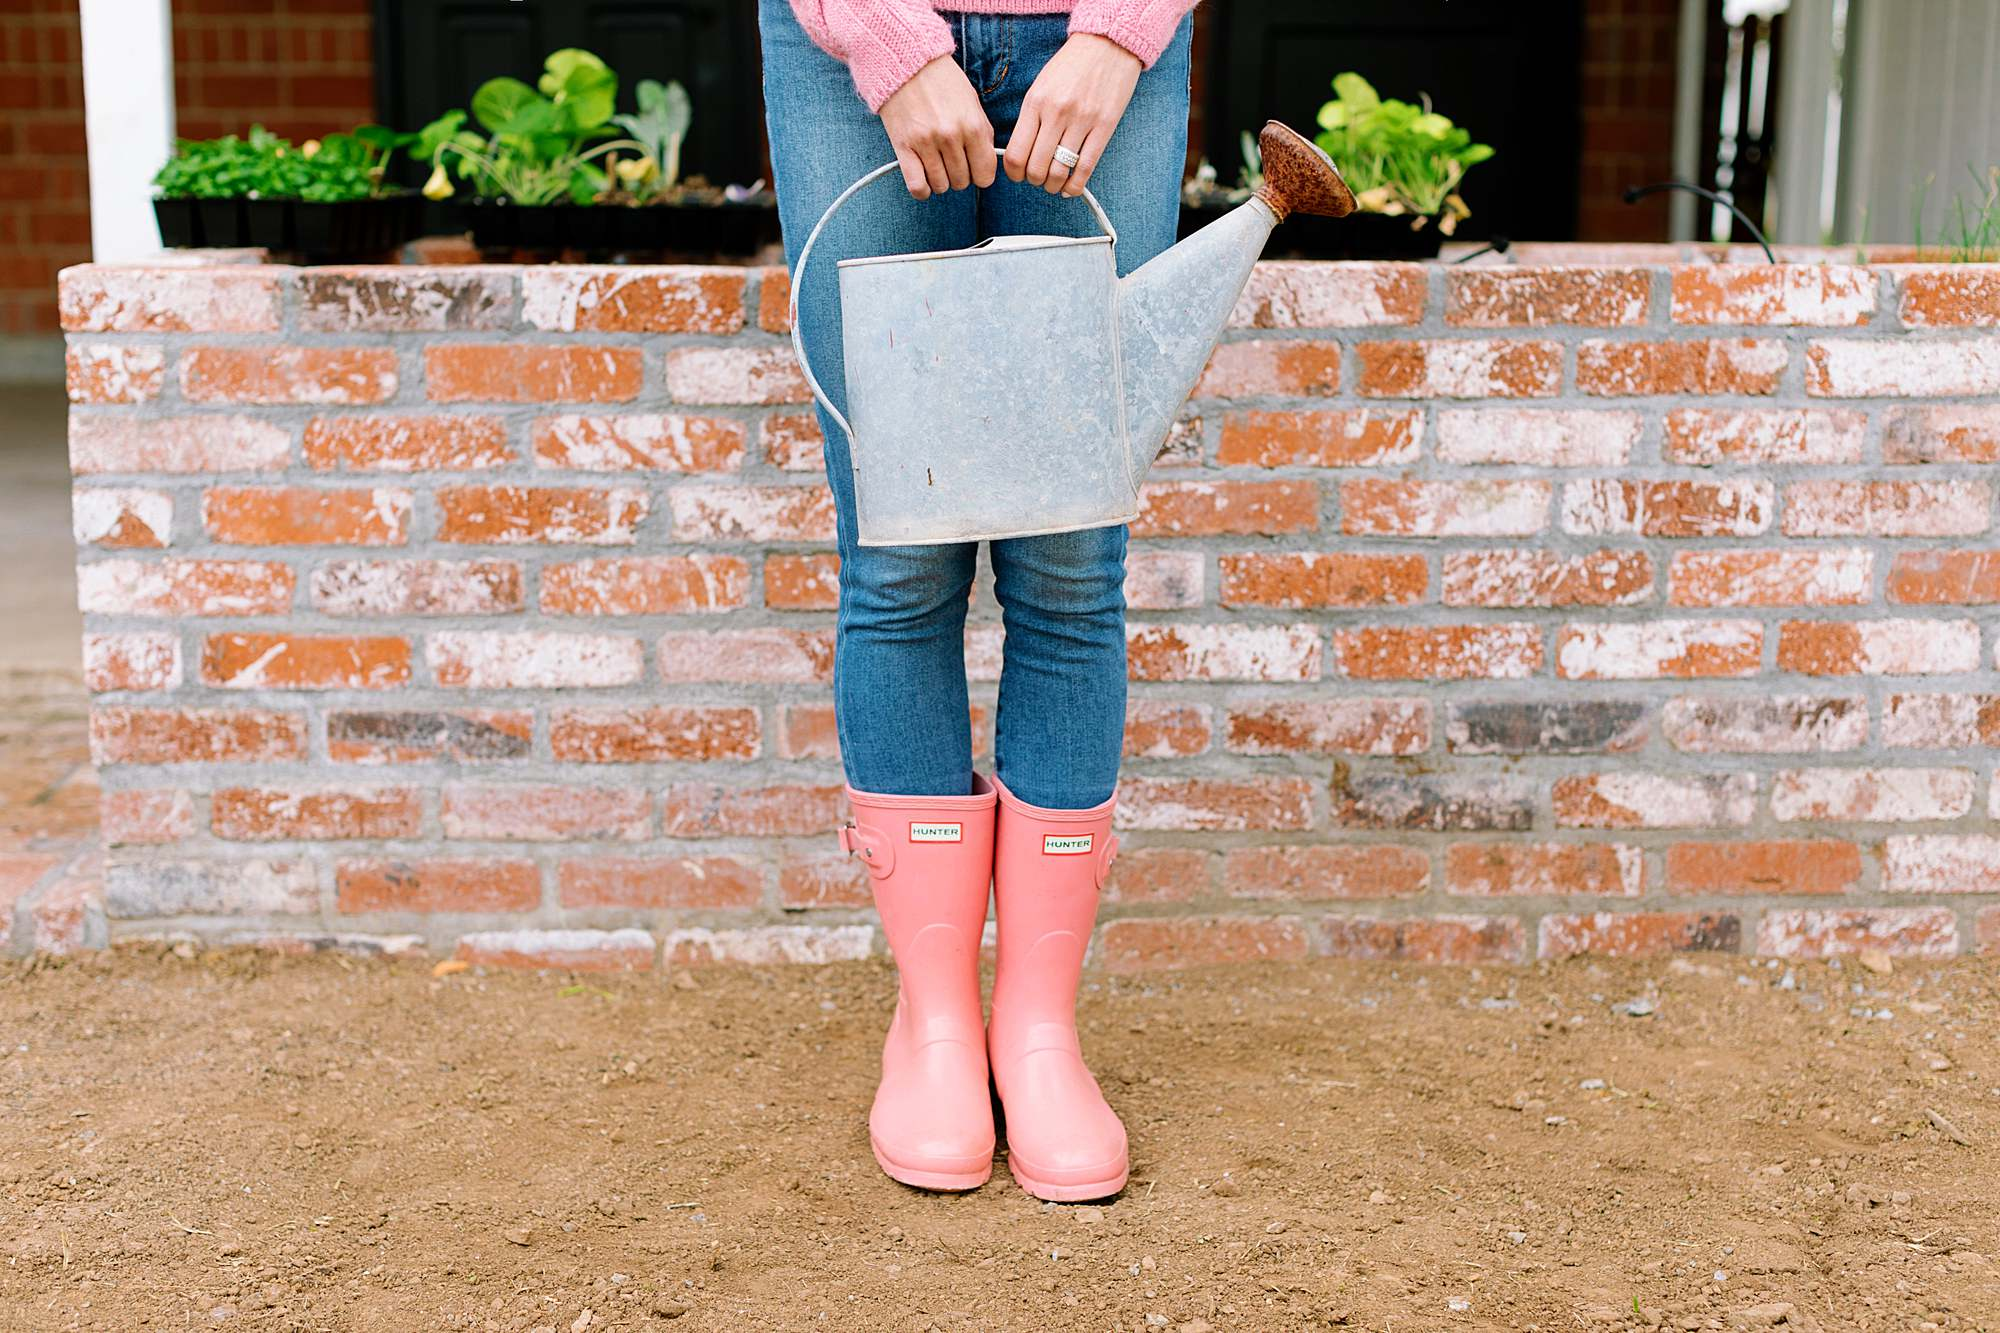 pink hunter boots in front of garden beds holding vintage garden watering can #hunterboots #garden